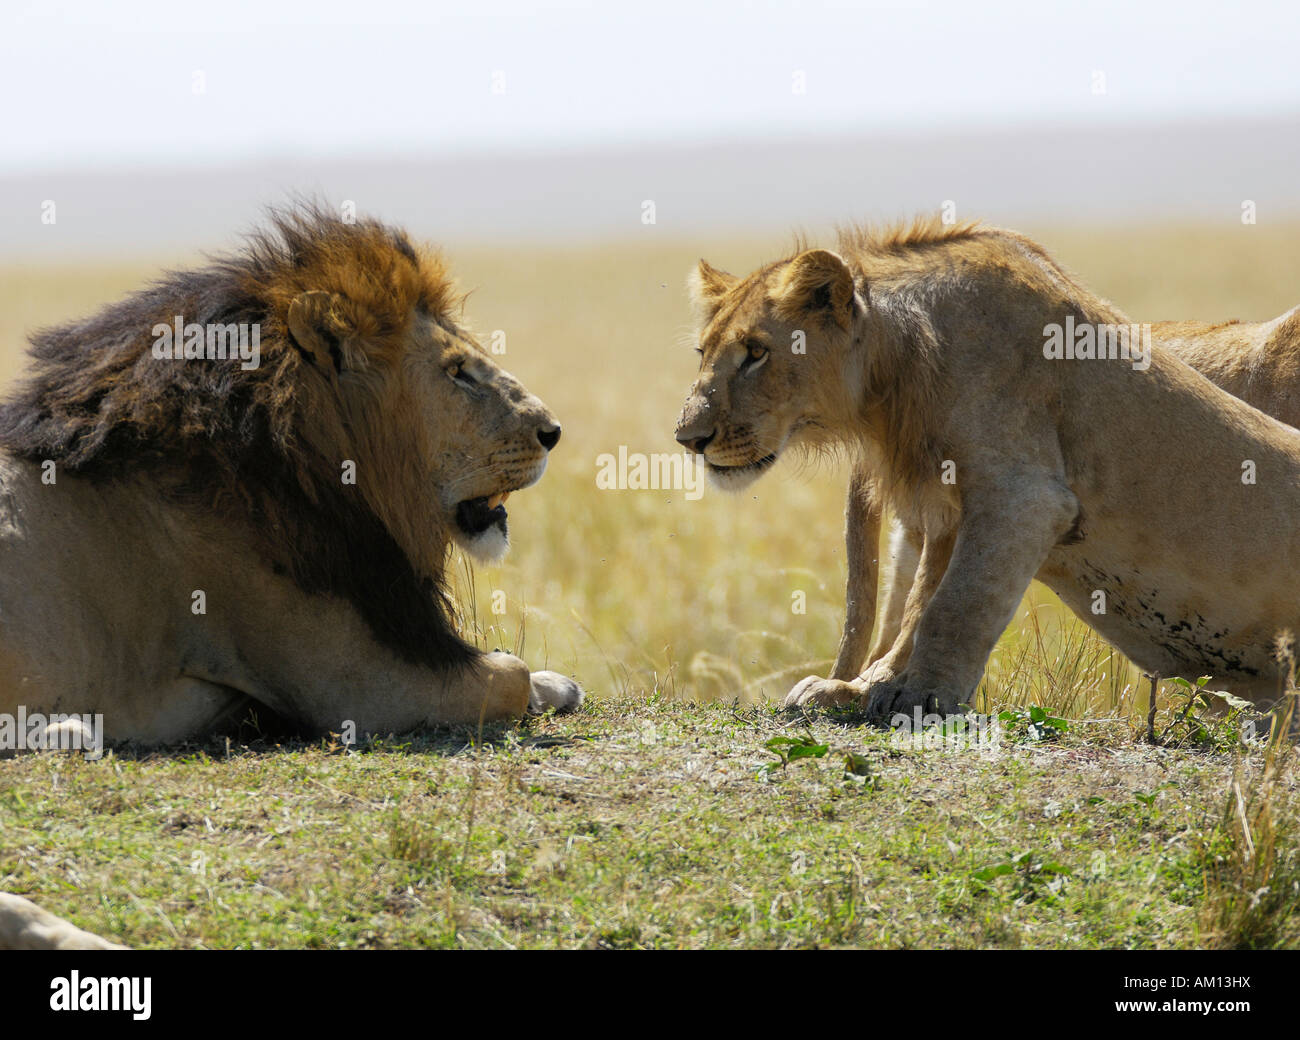 Lion (Panthera leo), young lion obsequiously greeting the pride leader, Masia Mara, Kenya Stock Photo